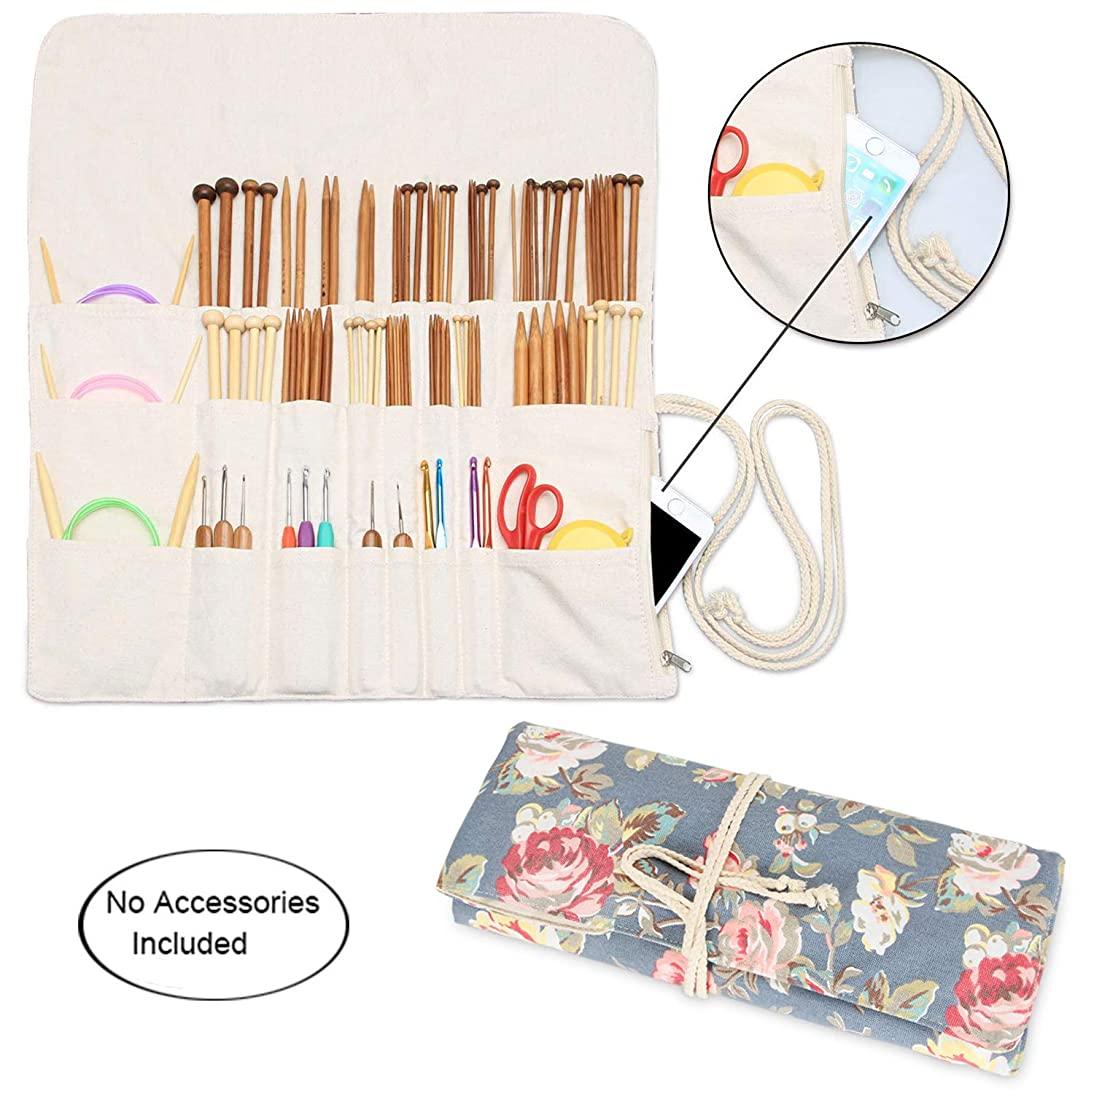 Teamoy Knitting Needles Holder Case(up to 14 Inches), Cotton Canvas Rolling Organizer for Straight and Circular Knitting Needles, Crochet Hooks and Accessories, Peony - NO Accessories Included